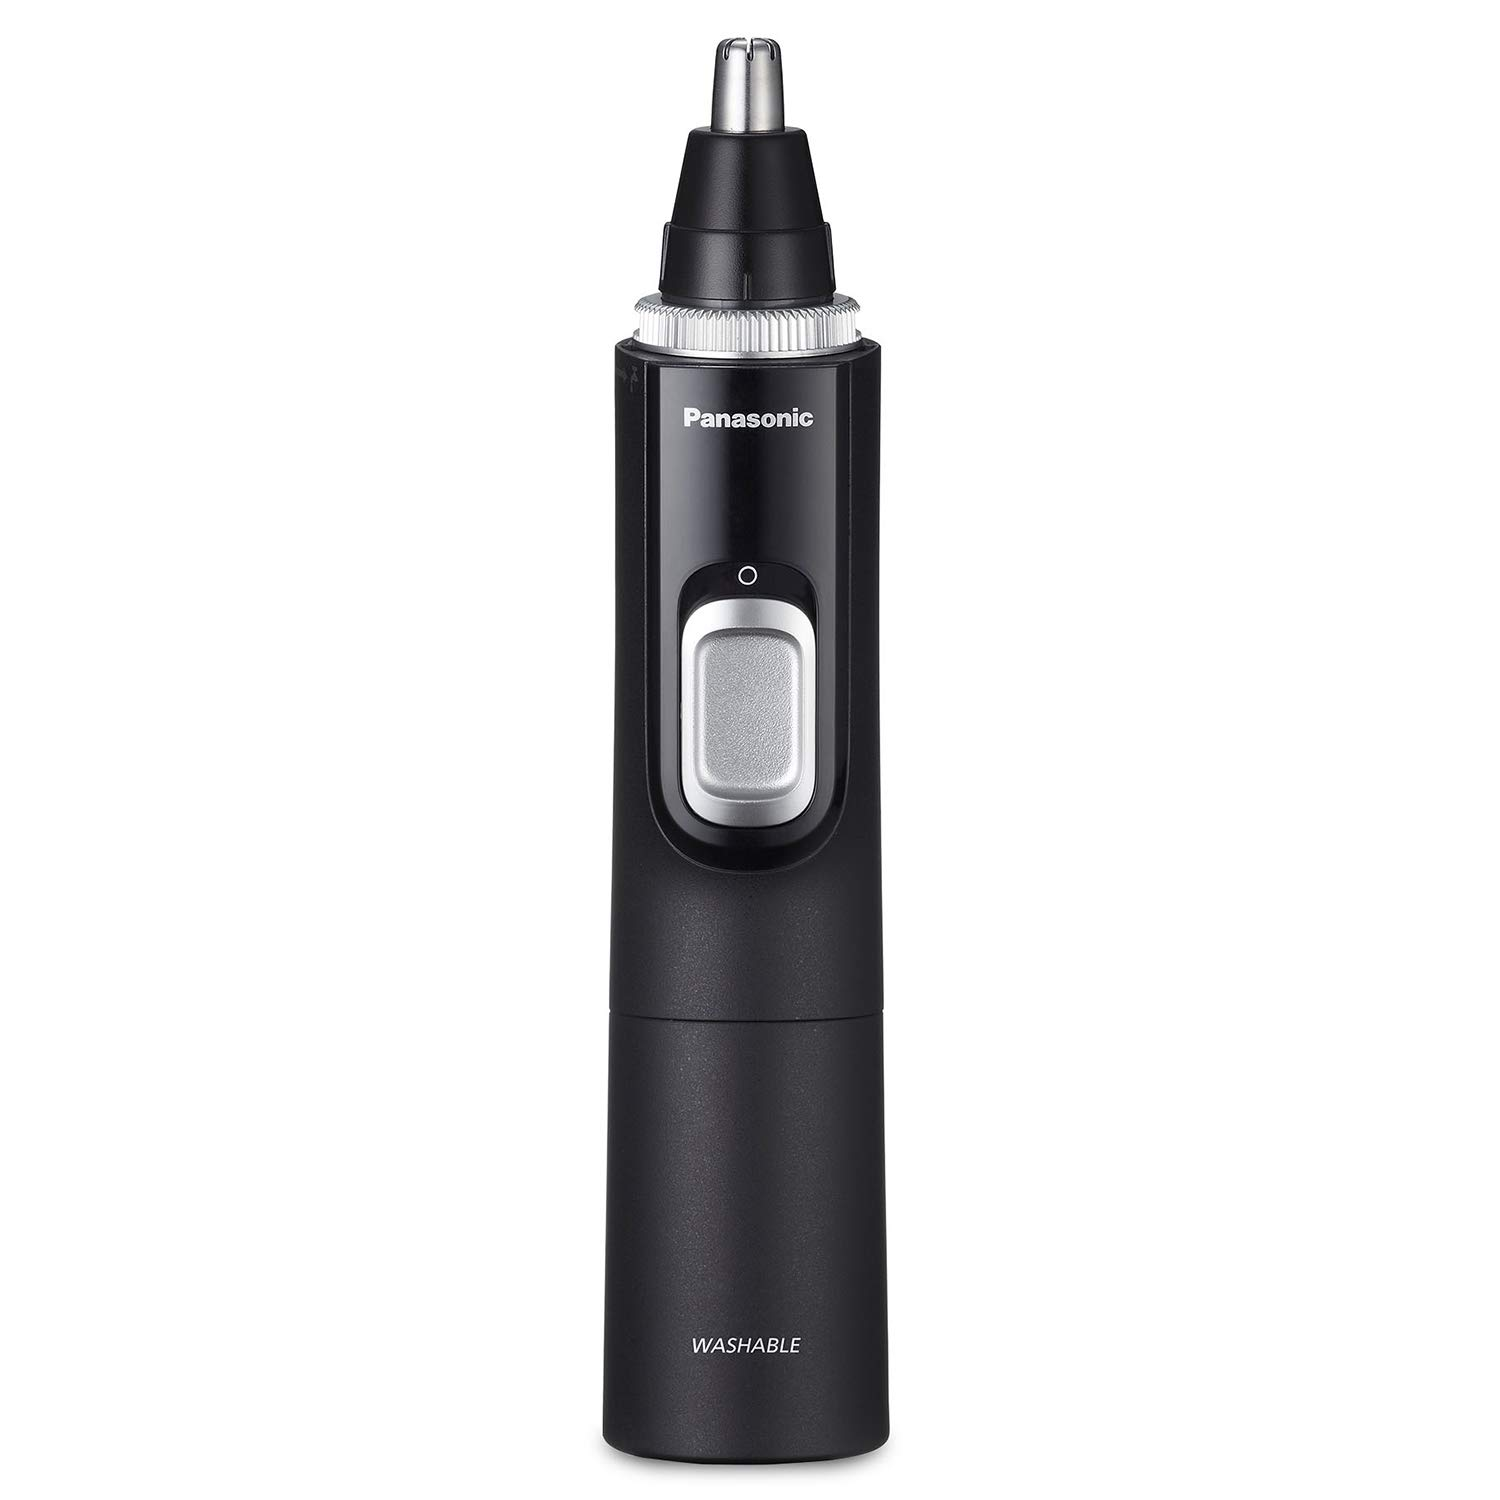 Panasonic Men's Ear and Nose Hair Trimmer with Vacuum Cleaning System - Wet Dry Hypoallergenic High-Performance Dual Edge Blade - ER-GN70-K (Black) by Panasonic